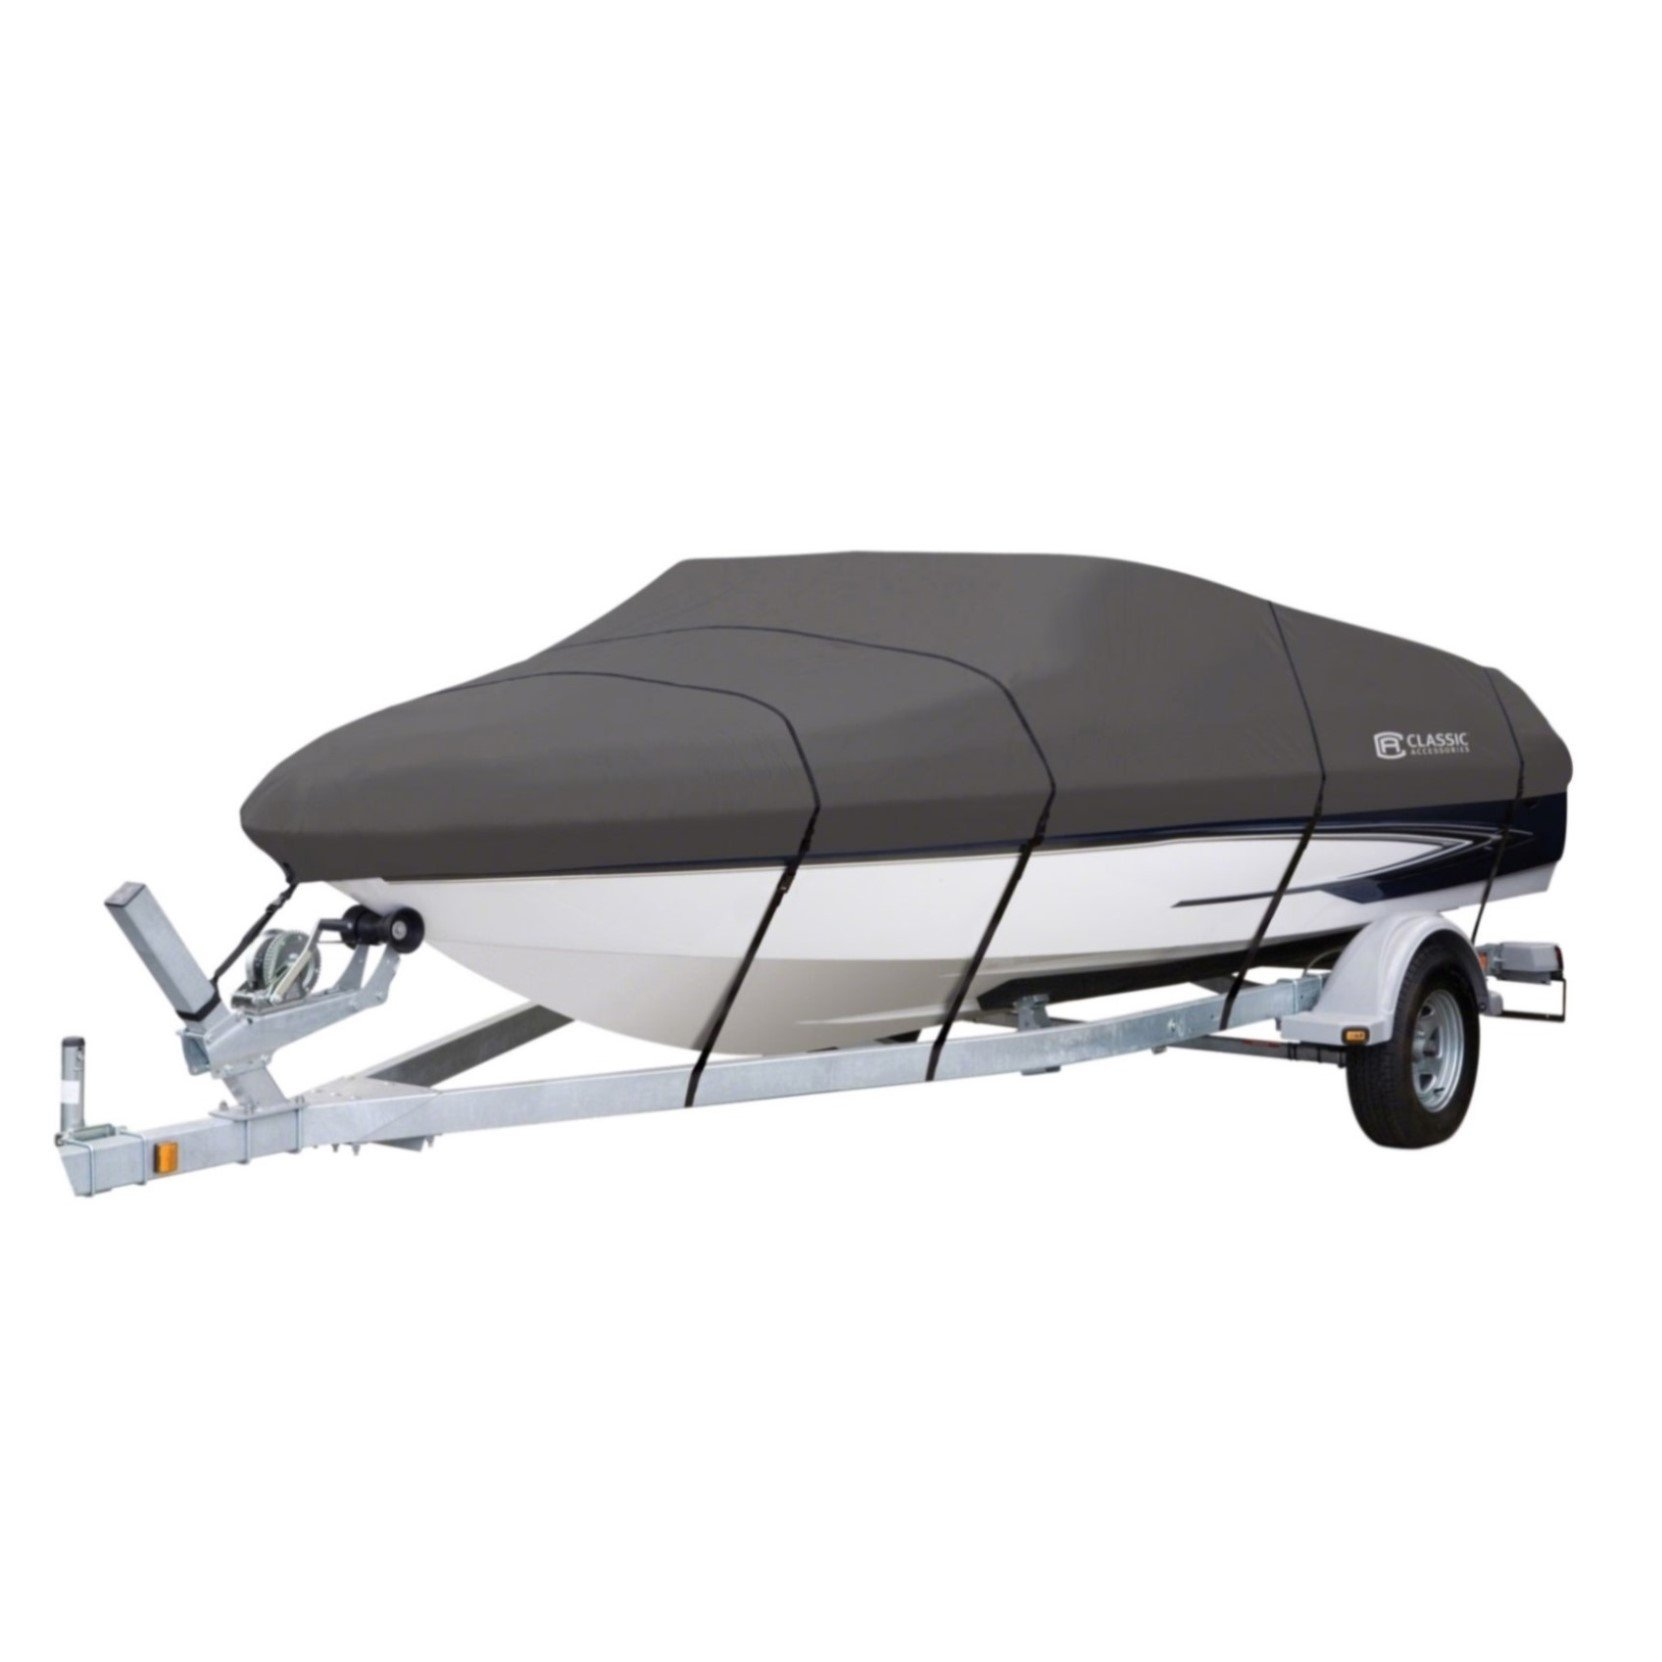 Classic Accessories StormPro Heavy-Duty Boat Cover With Support Pole For V-Hull Runabouts, 22' - 24' L Up to 116'' W